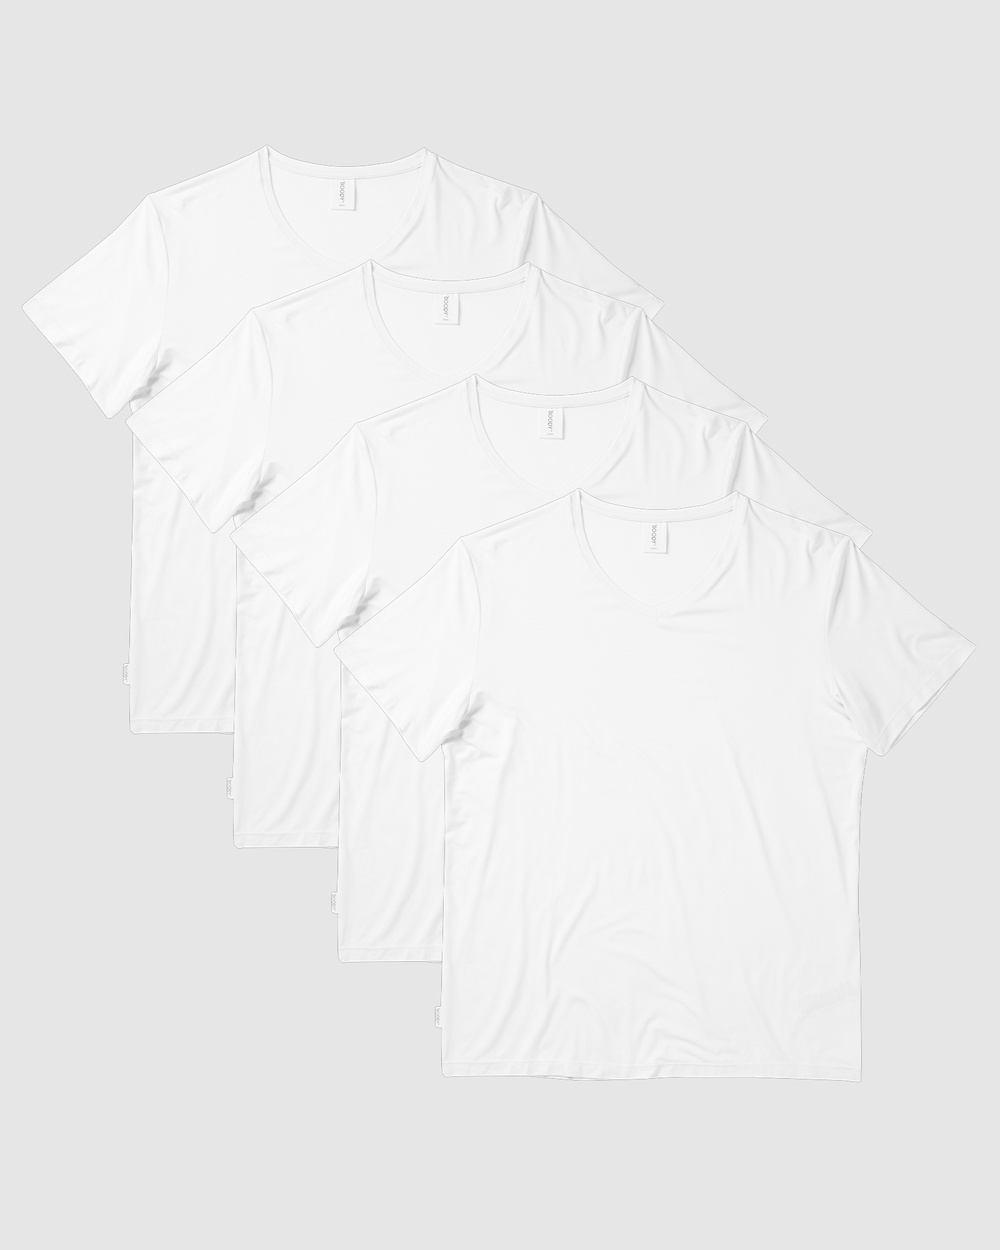 Boody Organic Bamboo Eco Wear - 4 Pack V Neck T Shirt - Short Sleeve T-Shirts (White) 4 Pack V-Neck T-Shirt